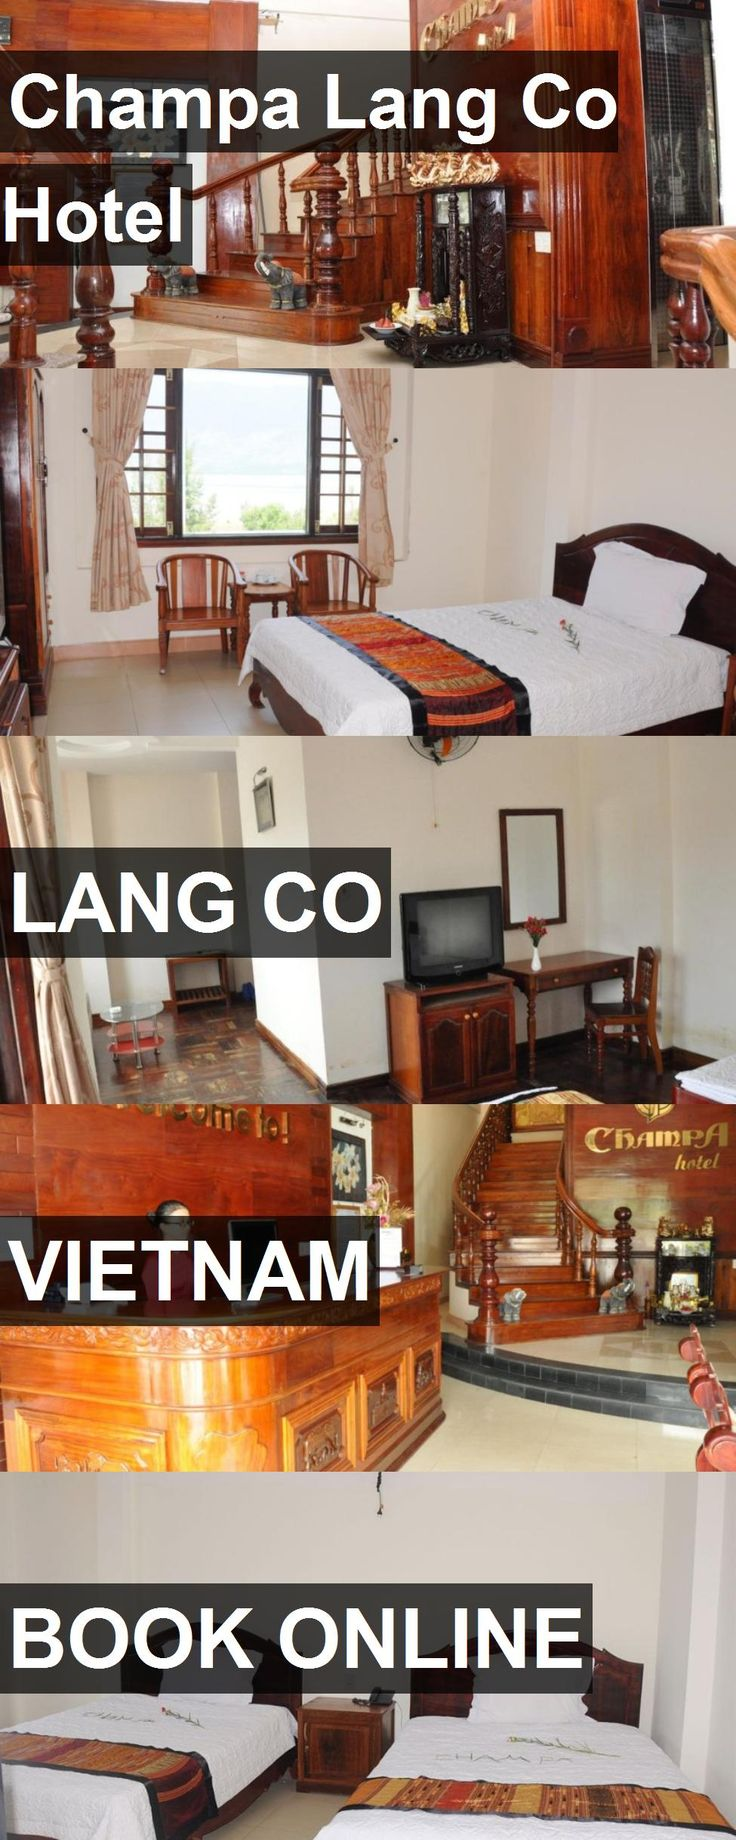 Hotel Champa Lang Co Hotel in Lang Co, Vietnam. For more information, photos, reviews and best prices please follow the link. #Vietnam #LangCo #ChampaLangCoHotel #hotel #travel #vacation